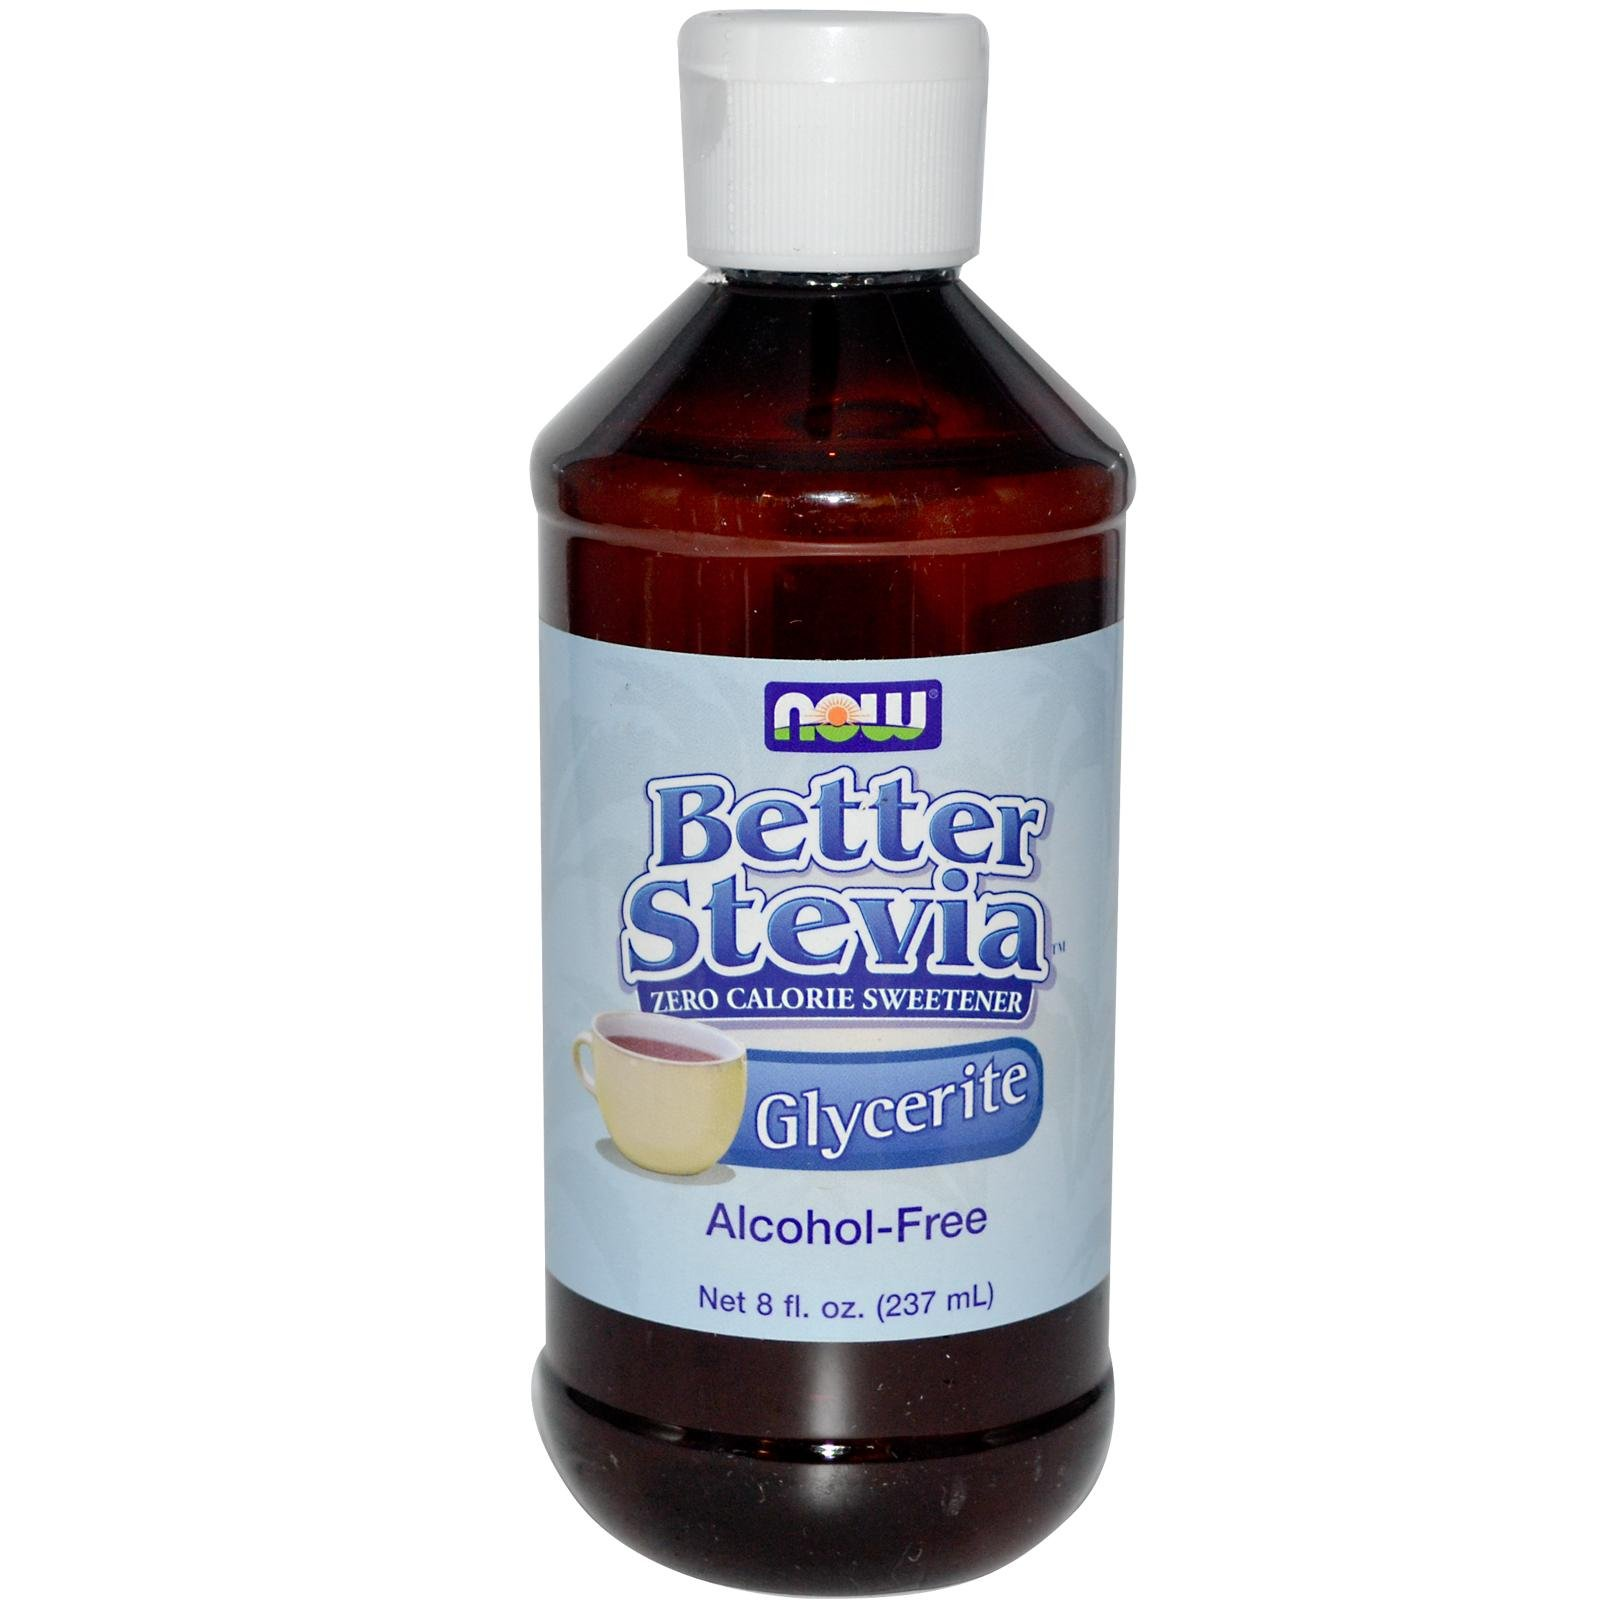 BetterStevia, Glycerite, Alcohol-Free, 8 fl oz (237 ml) by Now Foods